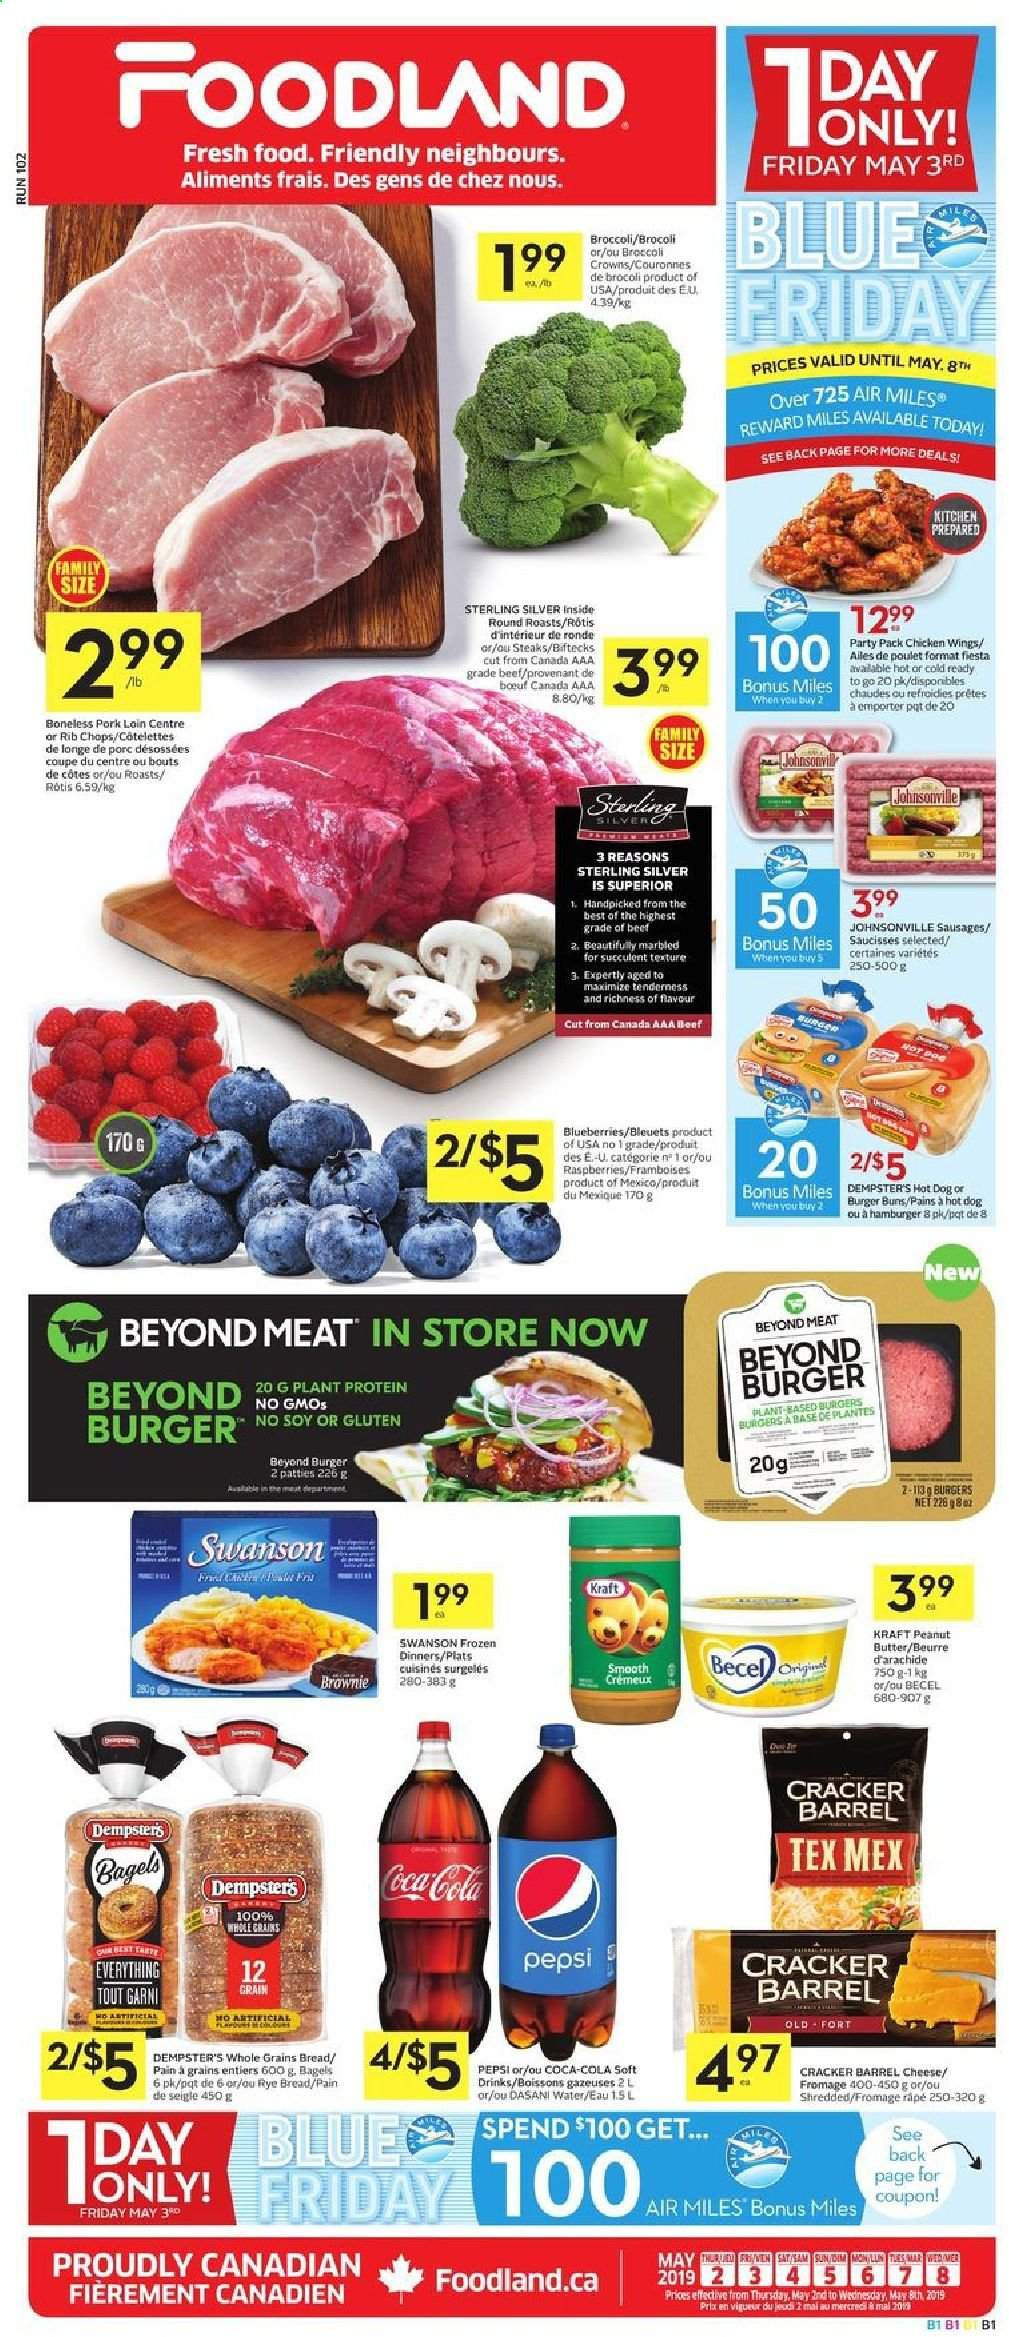 Foodland Flyer  - May 02, 2019 - May 08, 2019. Page 1.